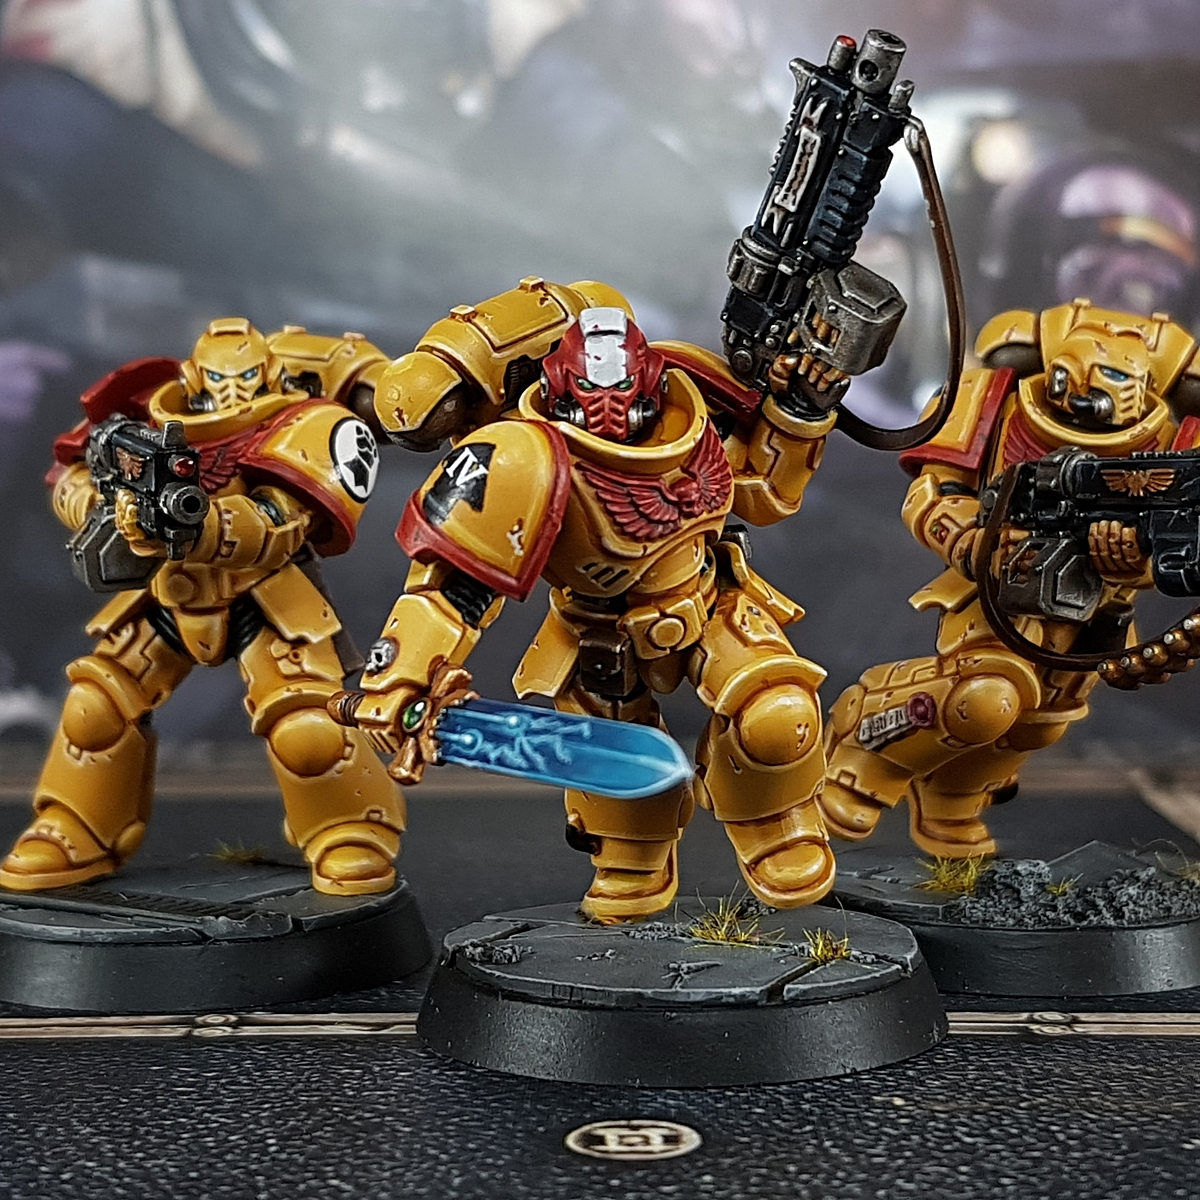 Imperial Fists (3rd Company)